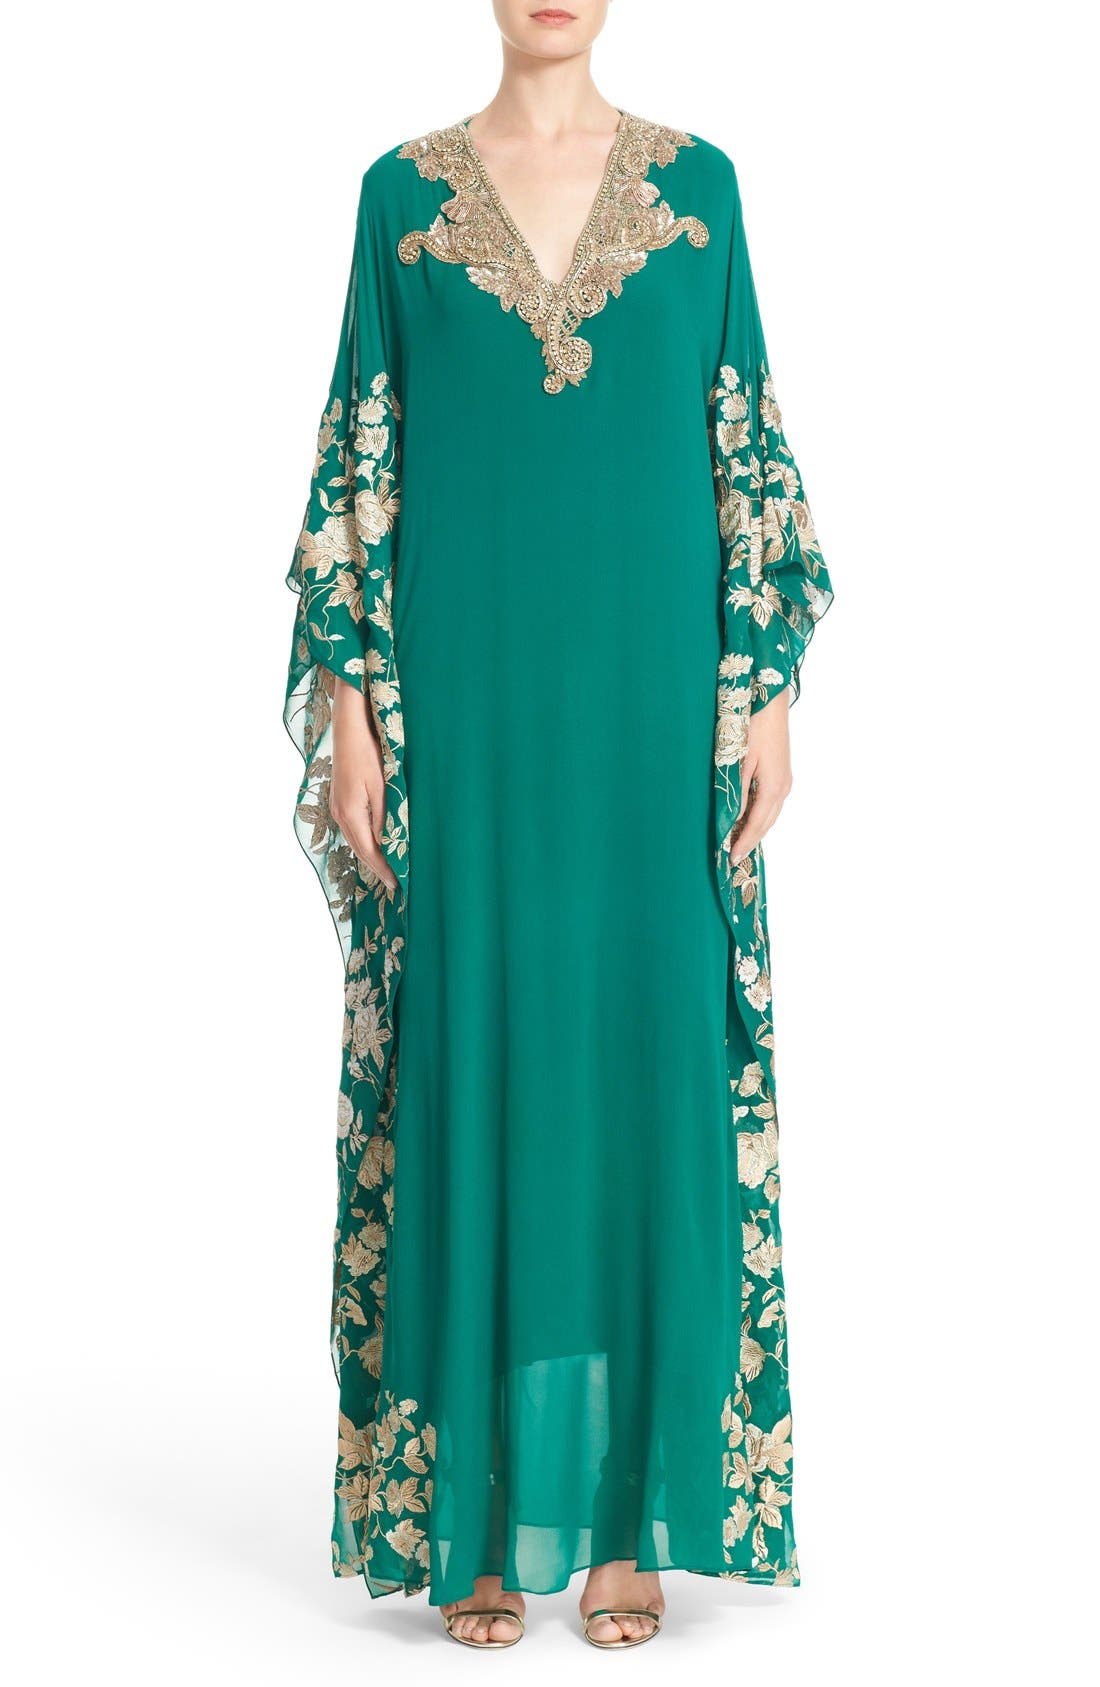 Badgley Mischka Embellished & Embroidered Caftan